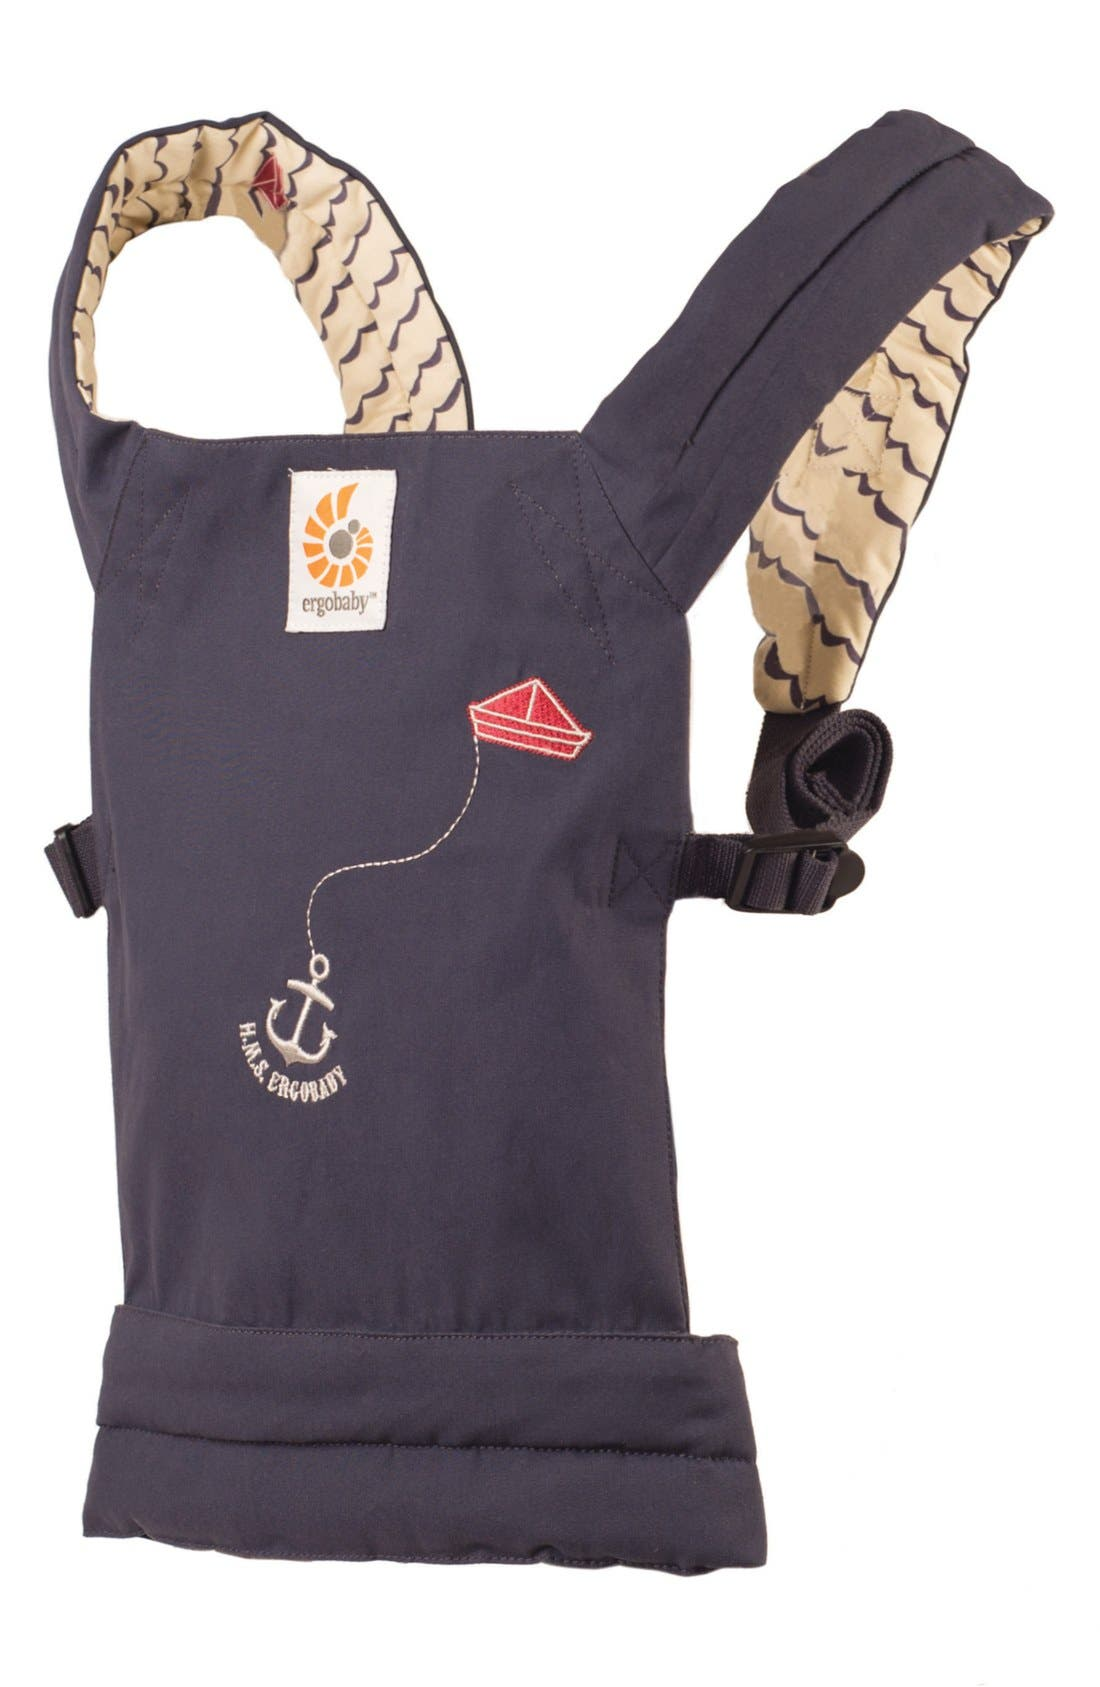 ERGOBABY 'Sailor' Doll Carrier